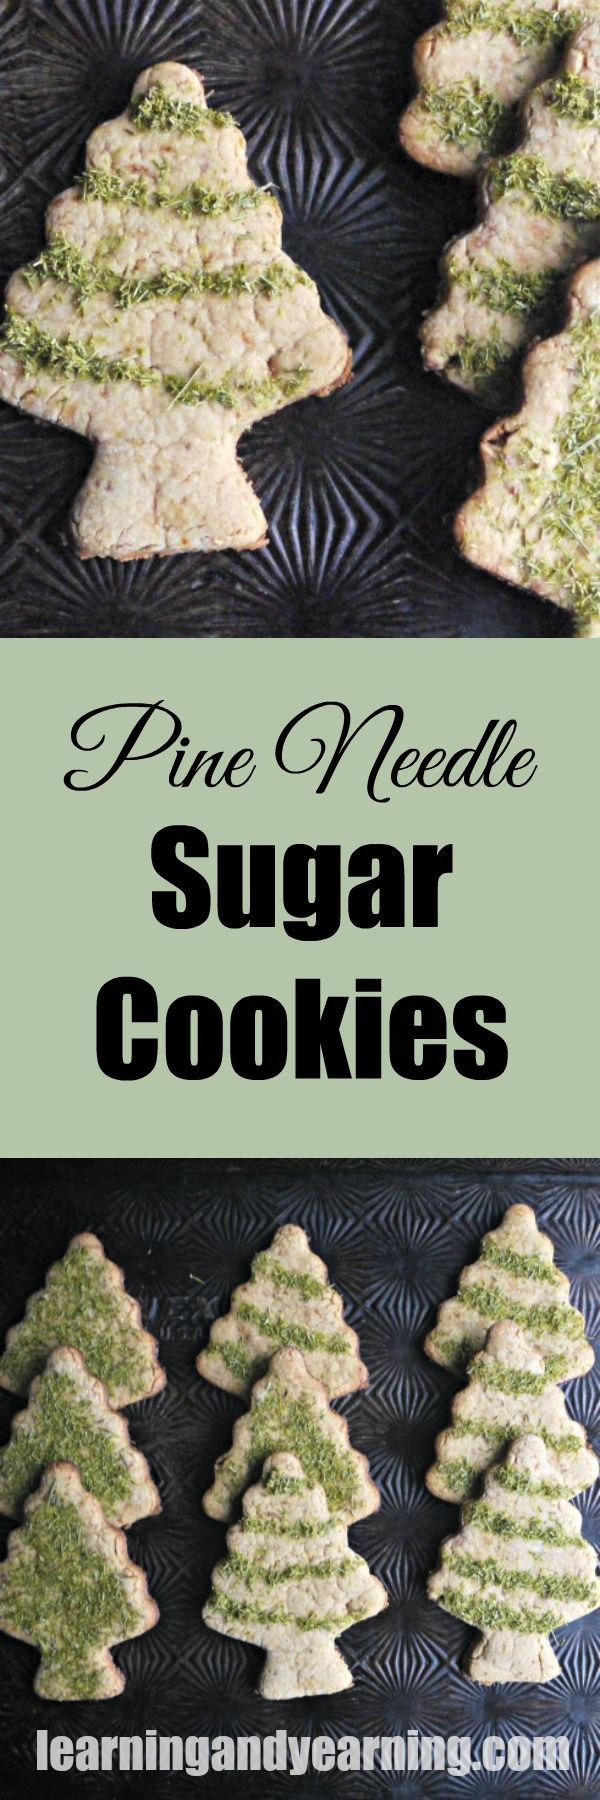 Who needs artificially colored sugar sprinkles when you can decorate your cookies with something you've foraged? Ground pine needles are edible and yummy and perfect for decorating these pine needle cookies!